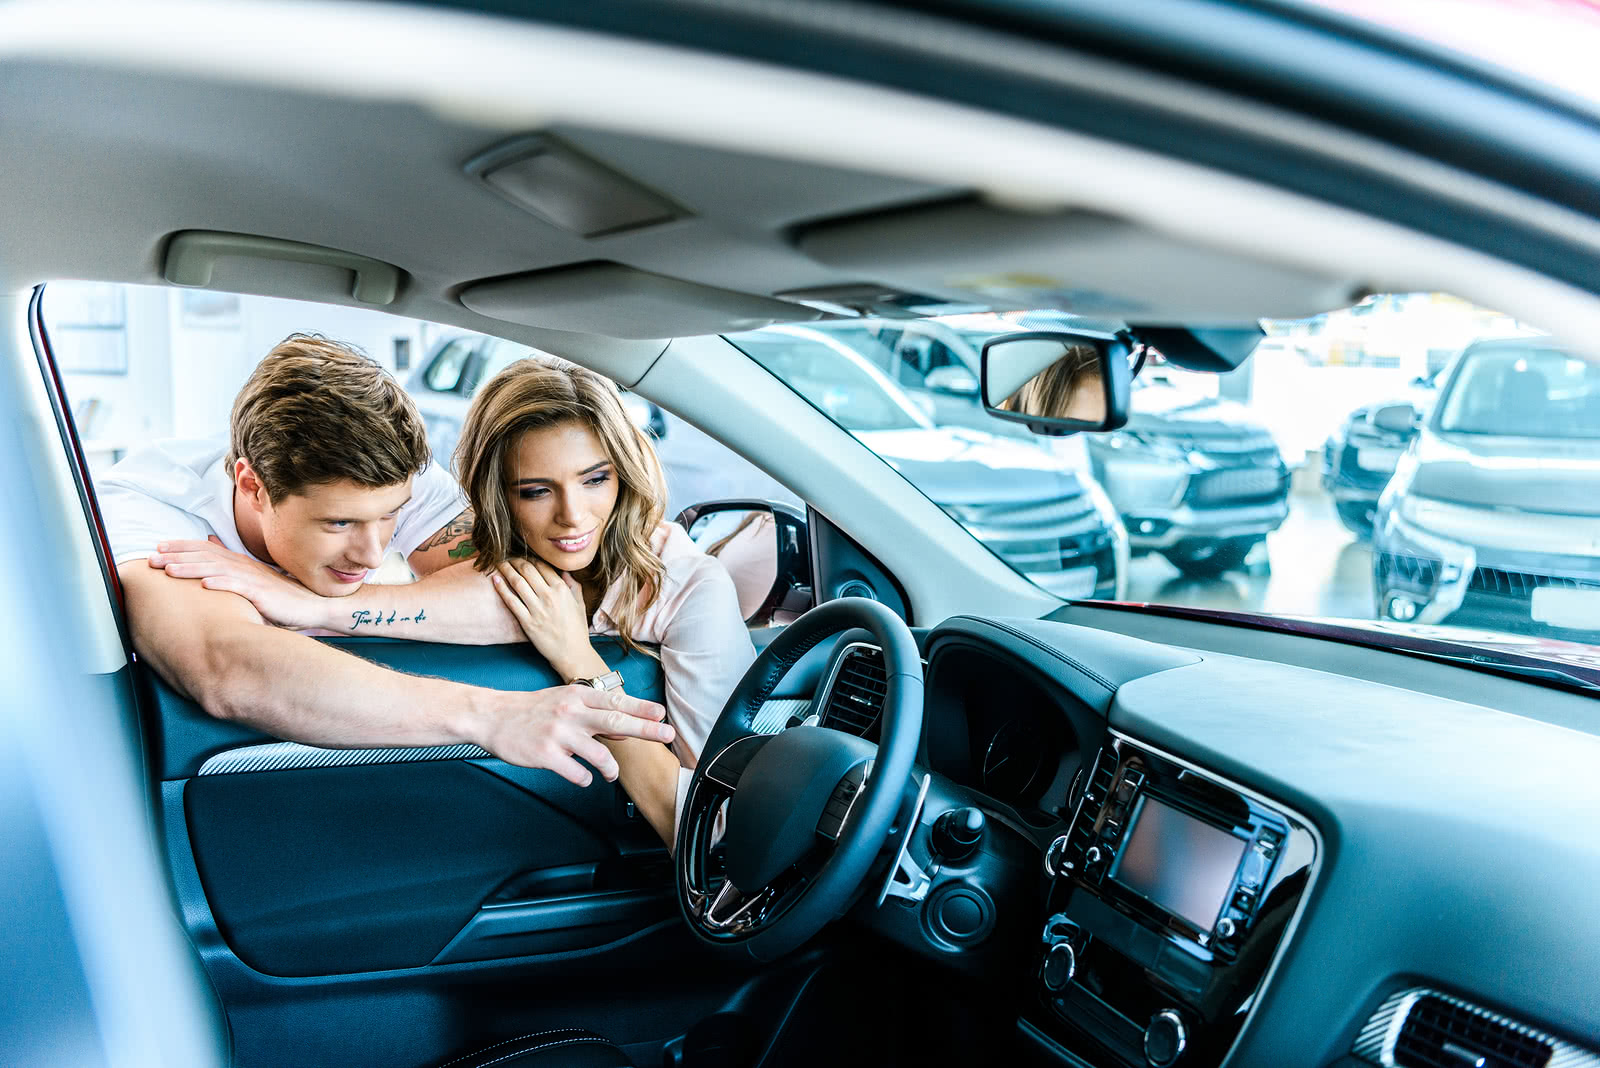 Couple shopping for a new car, signifying loan search process